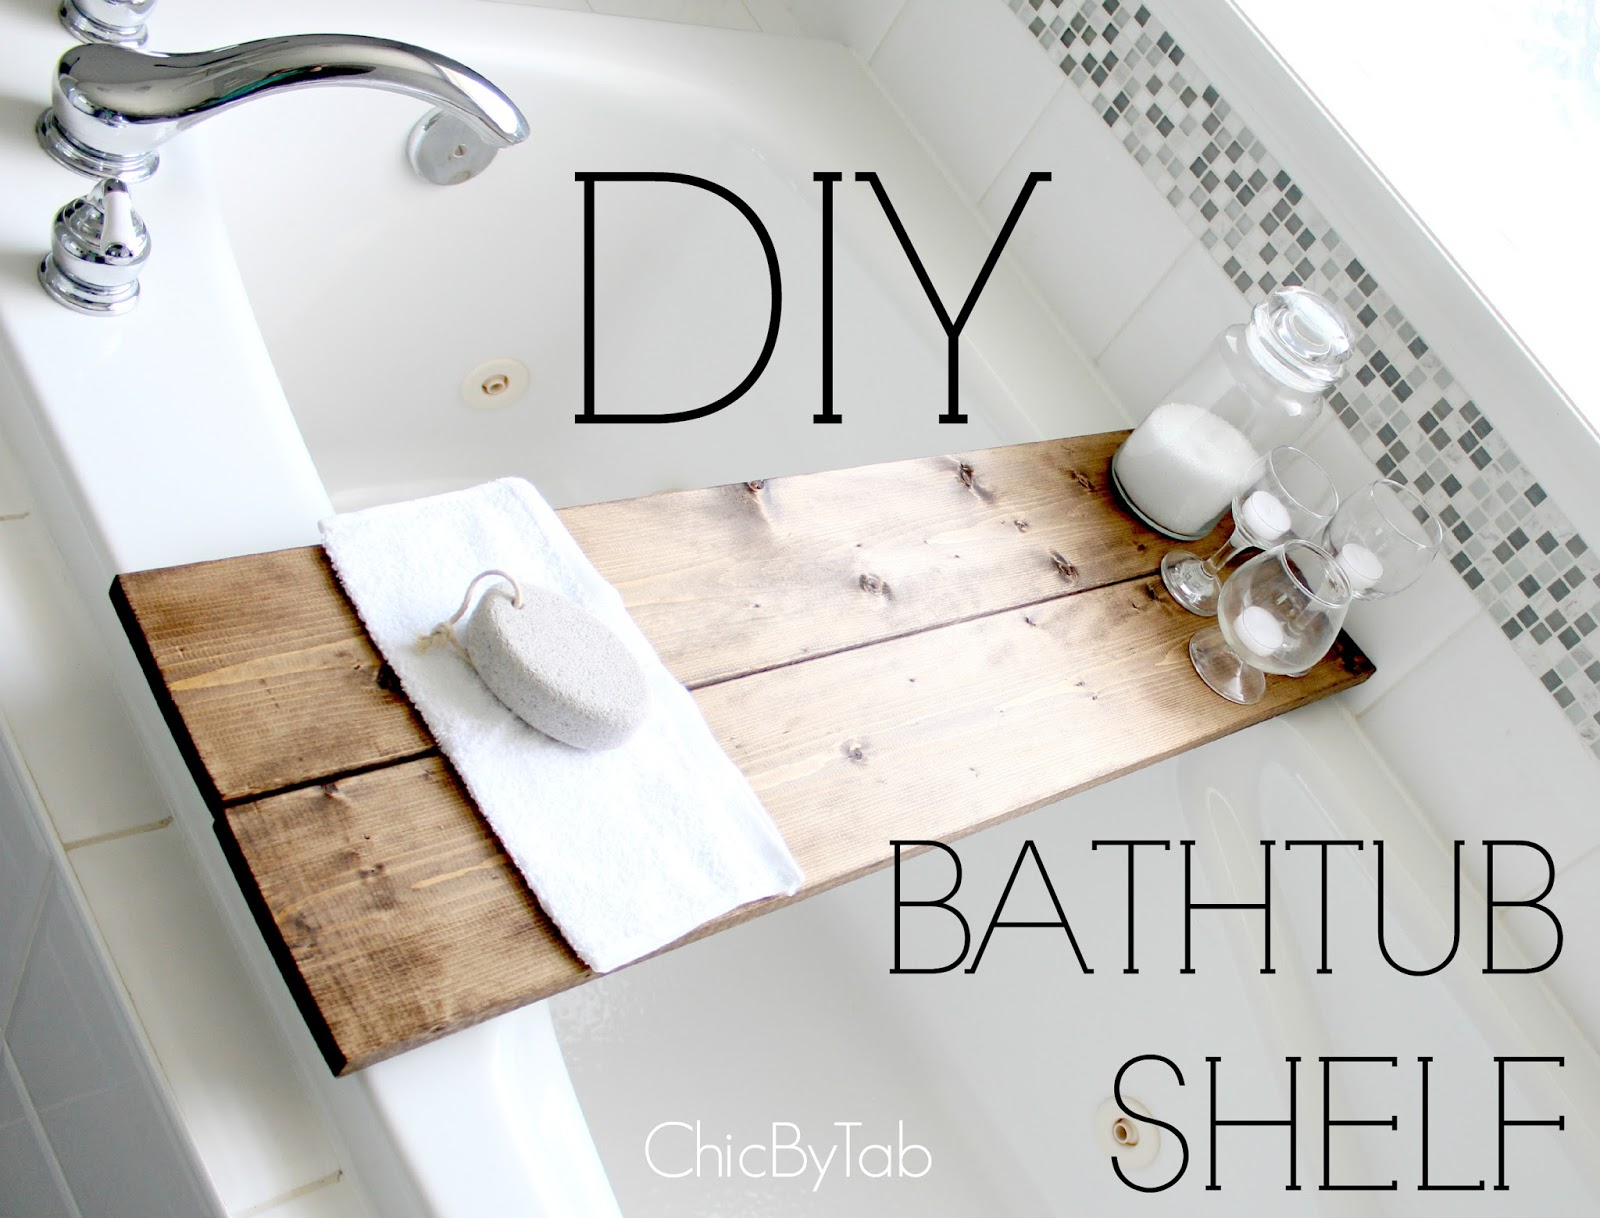 ChicByTab}: DIY Bathtub Shelf Made Easy